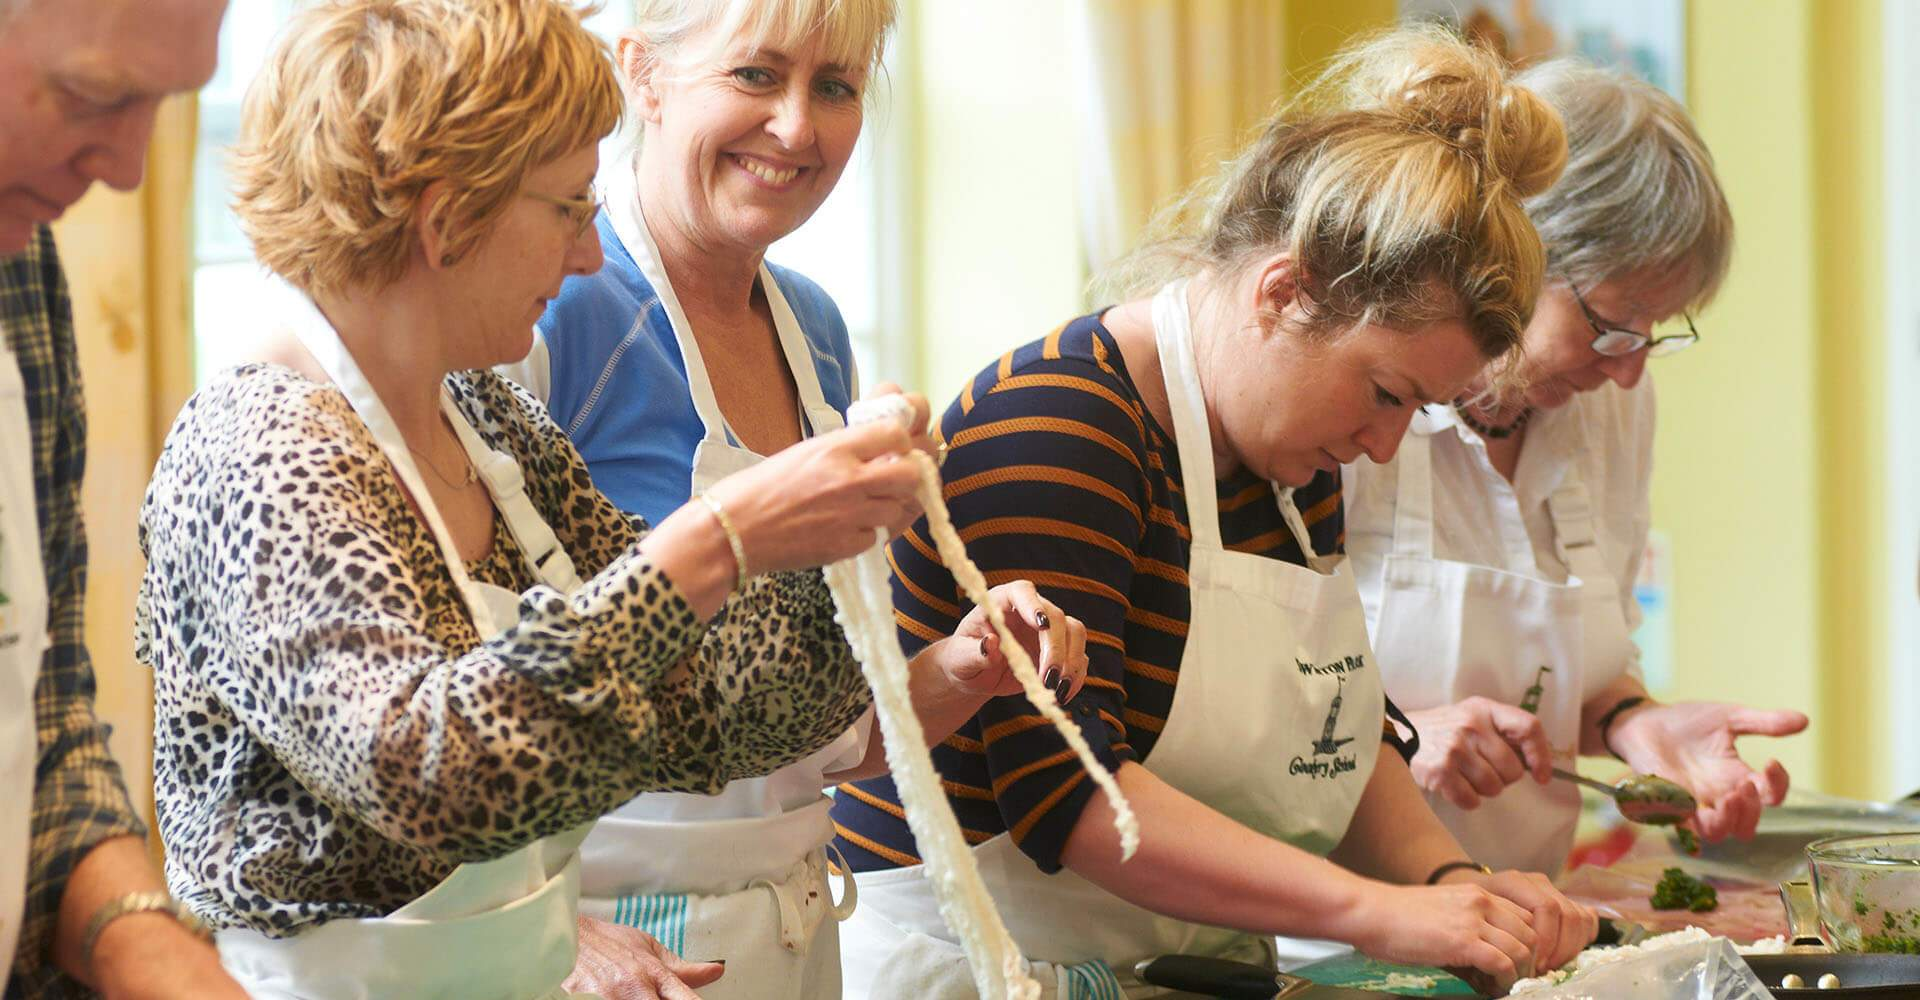 Attend Cookery School courses